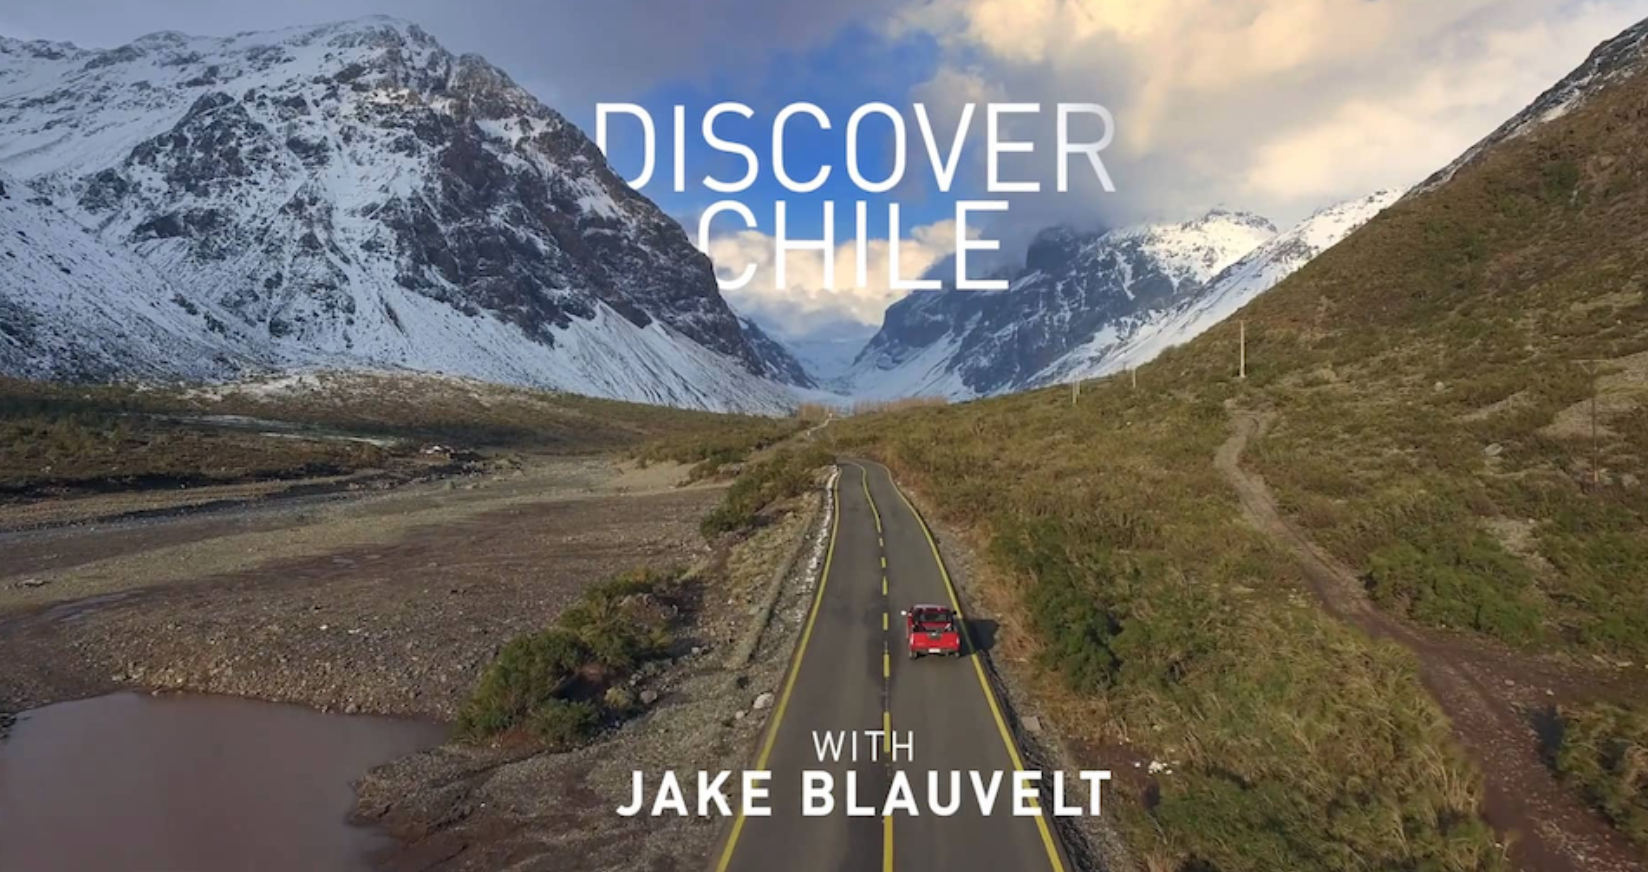 Jake Blauvelt headed south this summer